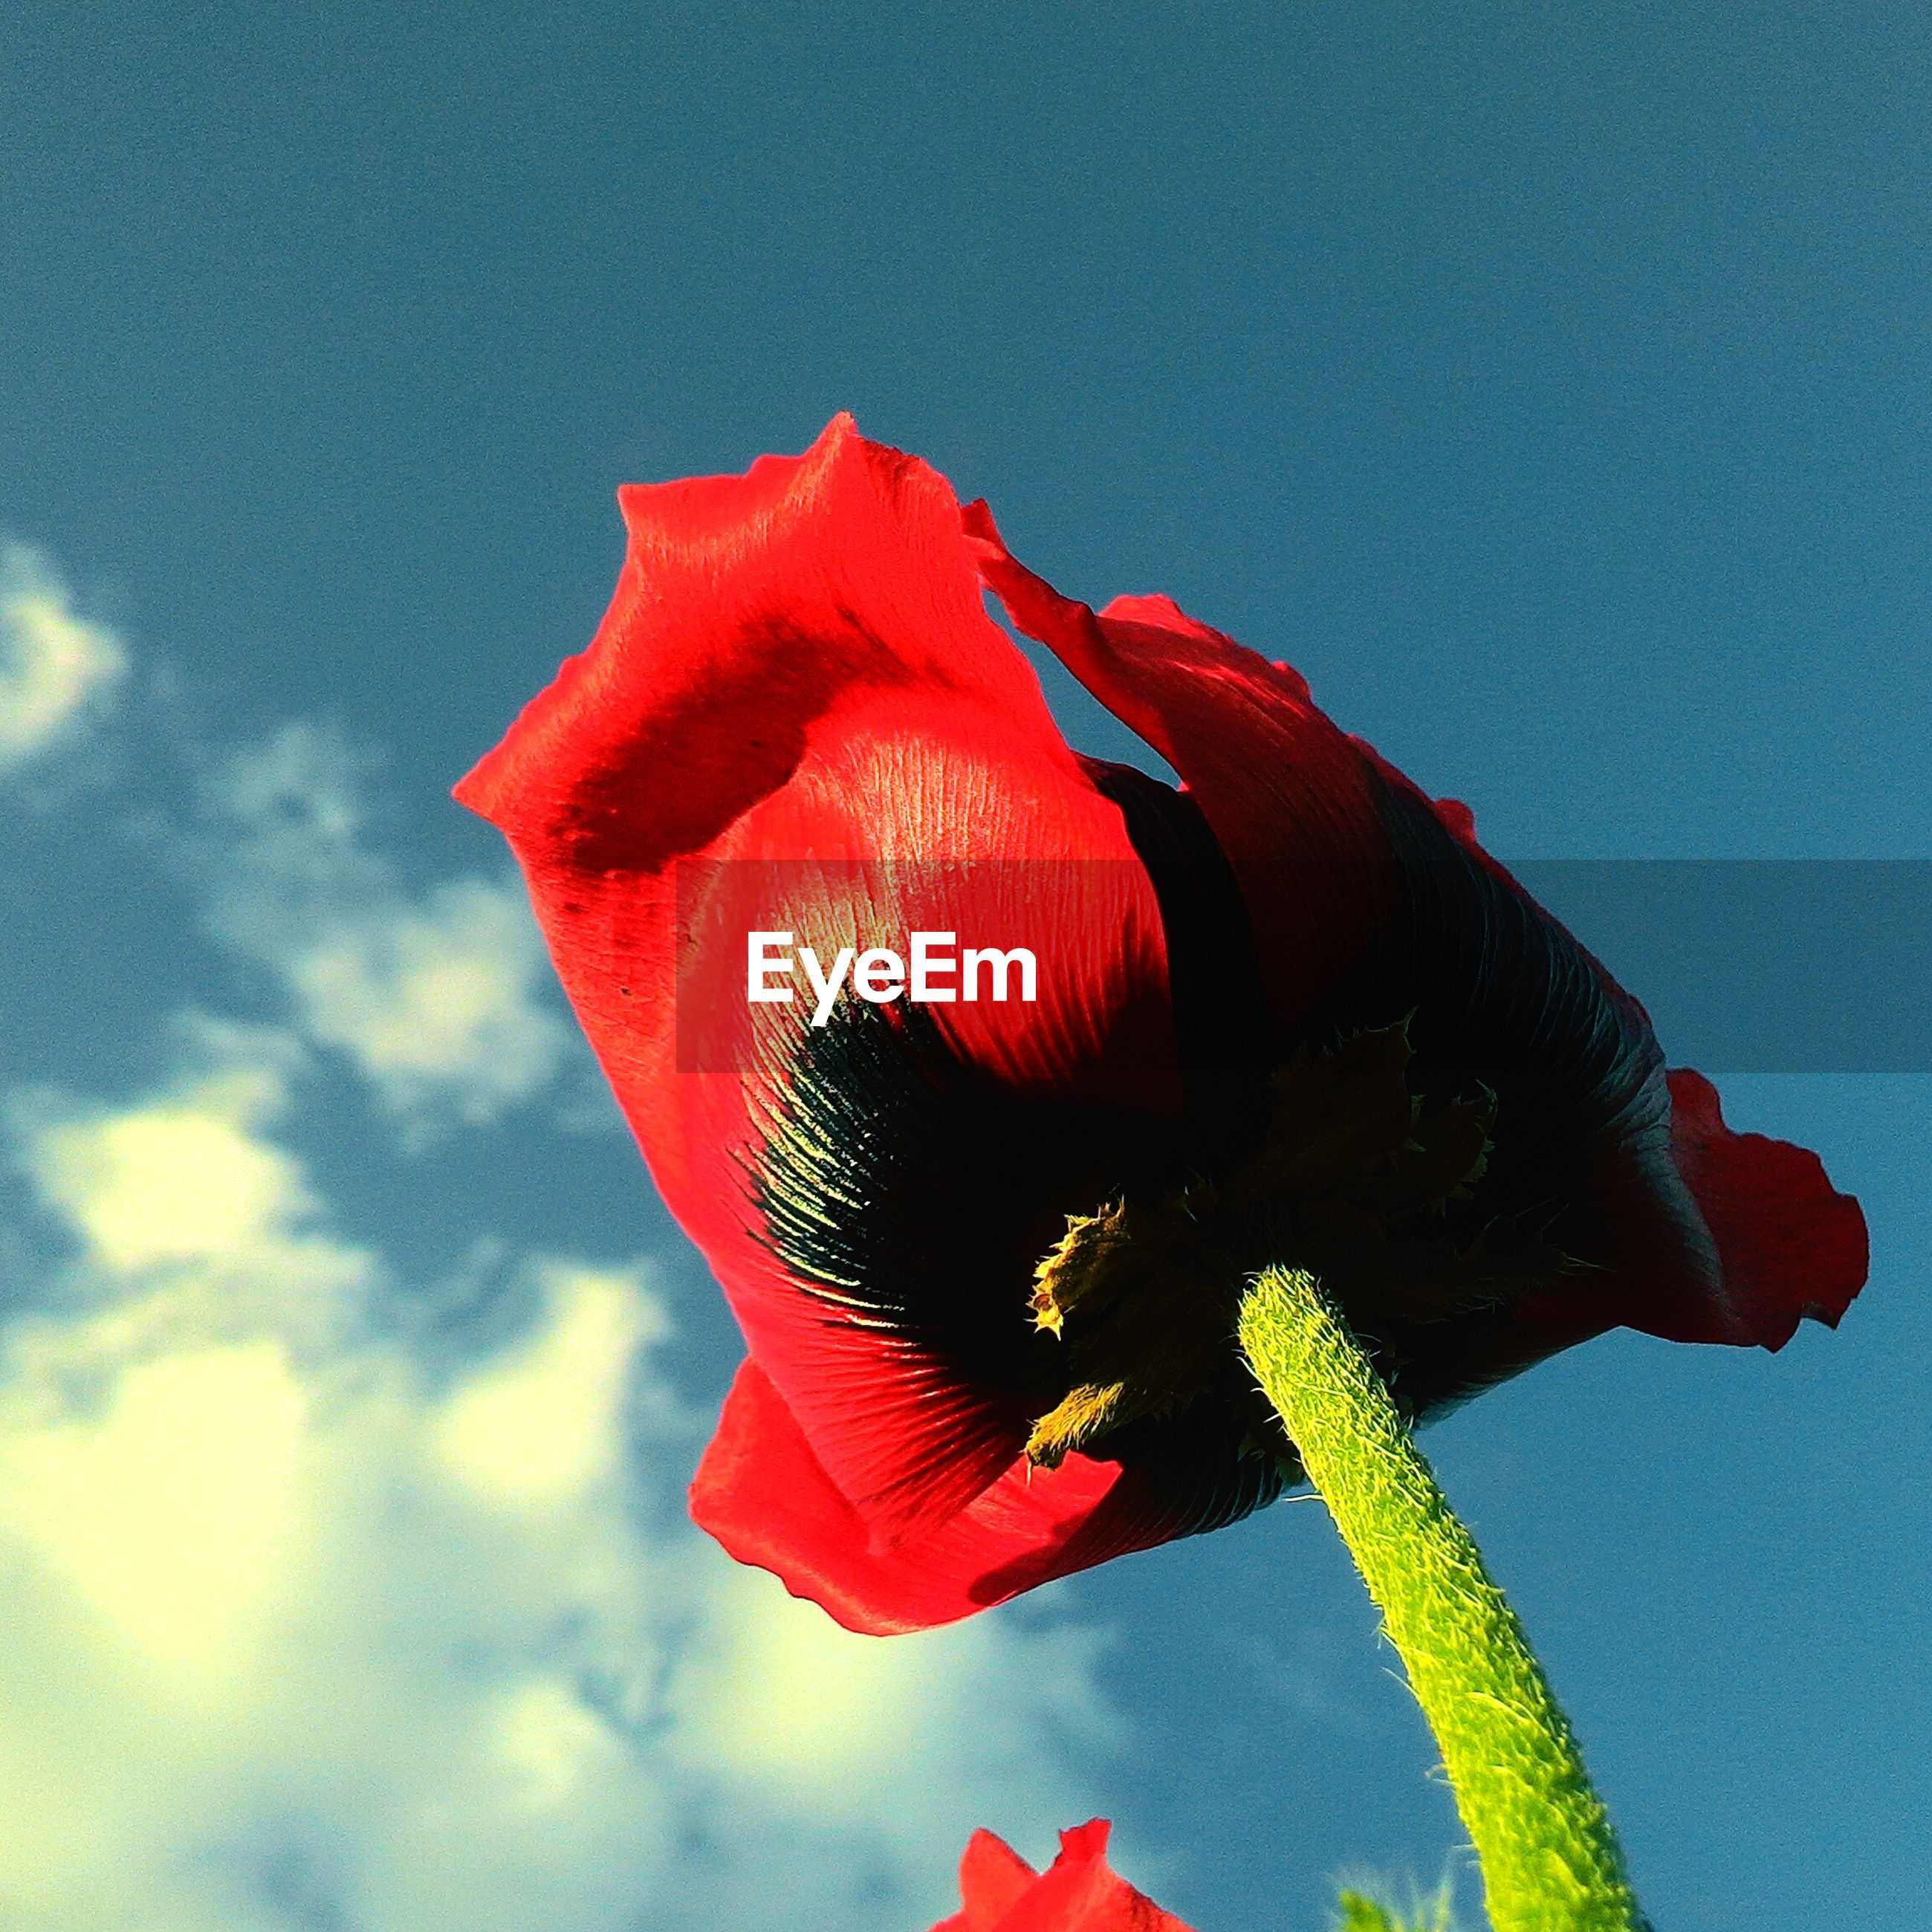 red, low angle view, sky, blue, close-up, flower, nature, beauty in nature, wind, growth, single flower, day, outdoors, plant, no people, stem, fragility, sunlight, petal, flower head